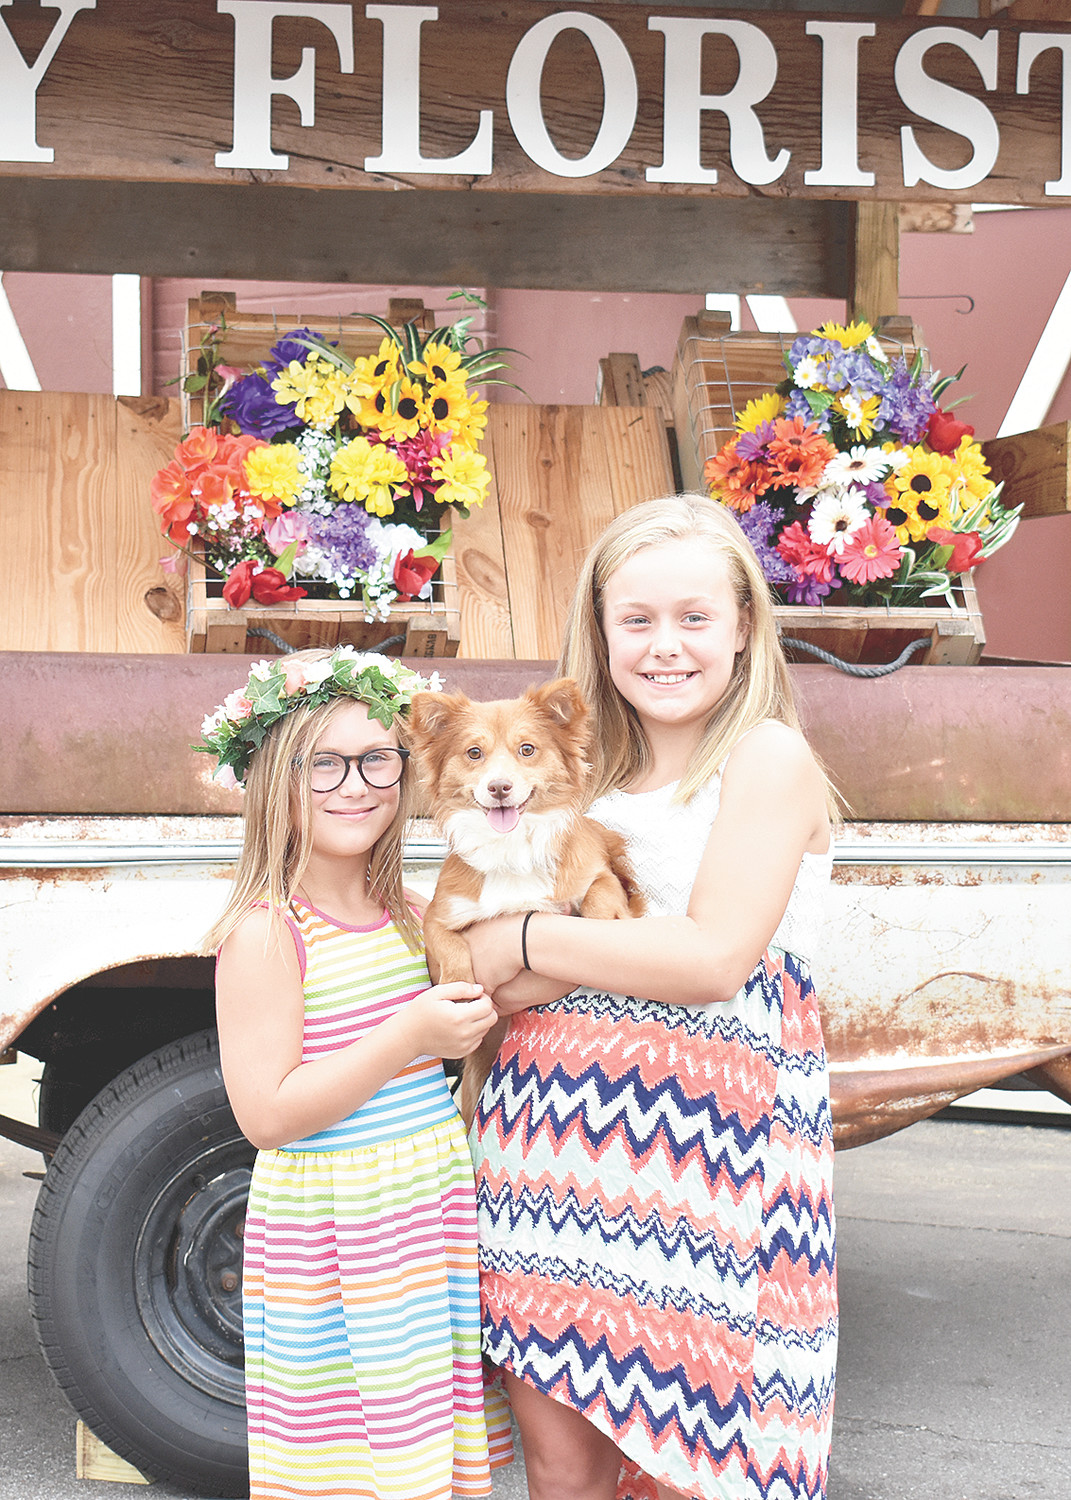 Kynadie (left) and Kortnee Brown brought Missy to the birthday party. The girls, along with sisters Karli and Kassidy, provided homemade dog treats for the event.